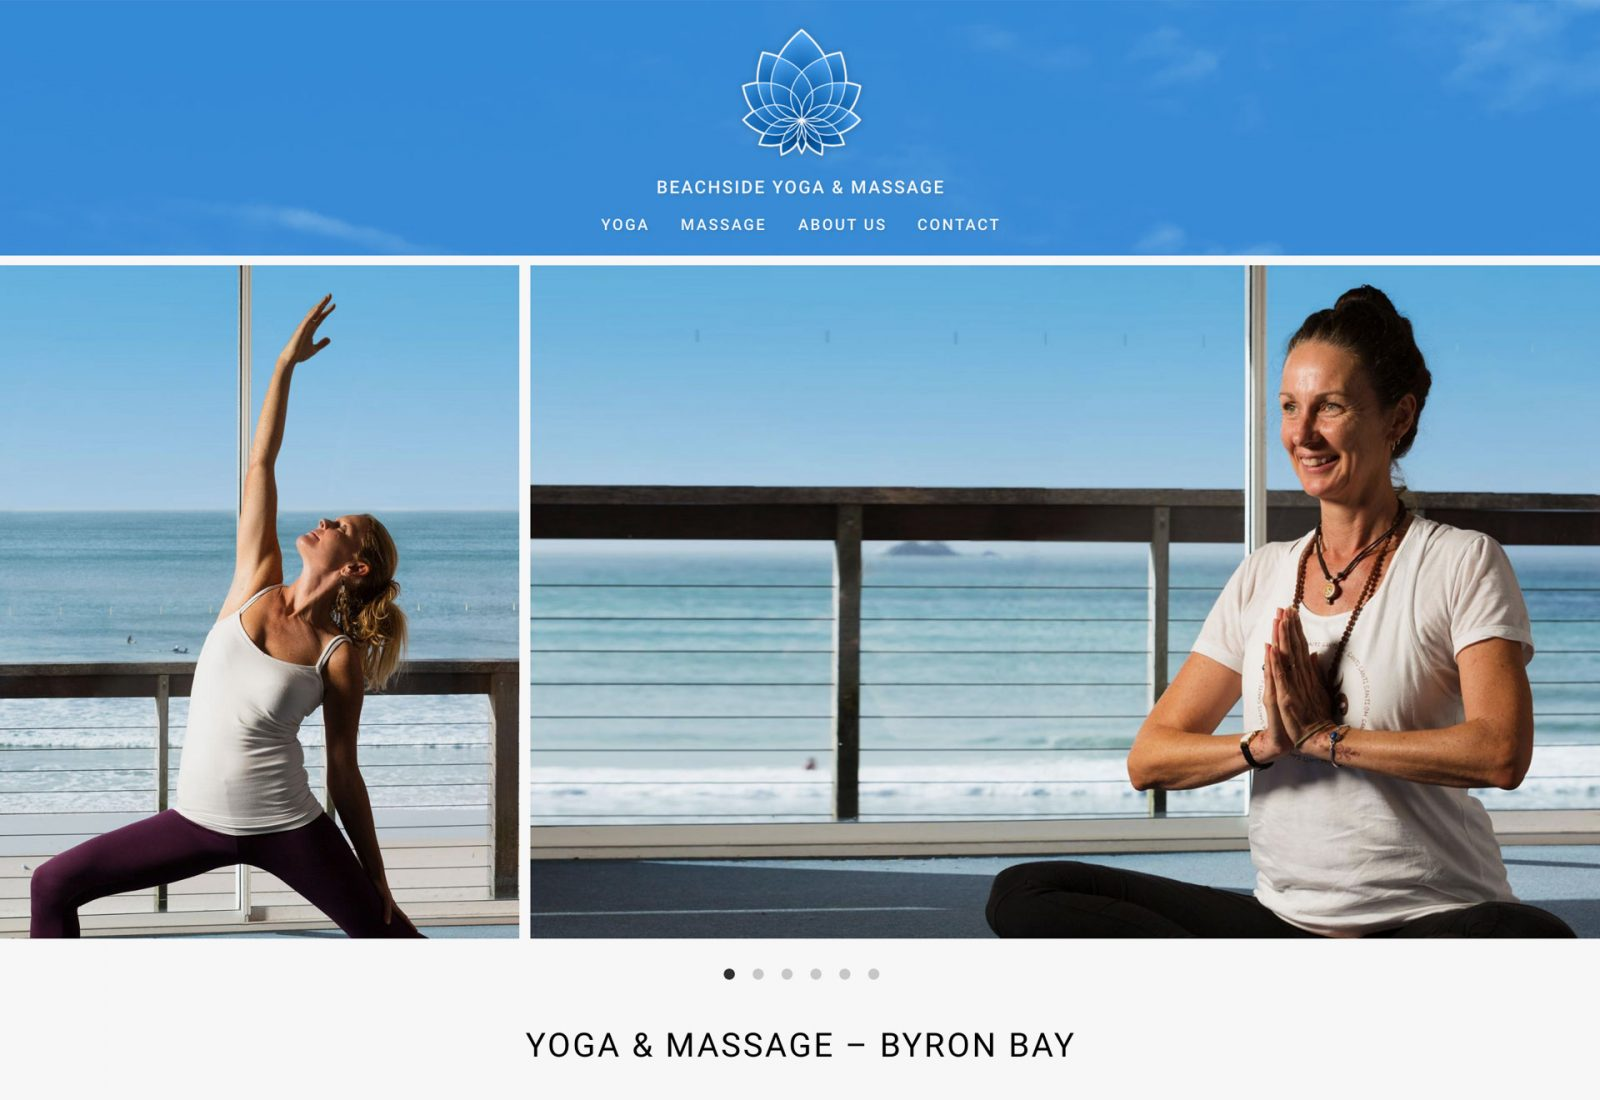 Beachside Yoga and Massage home page